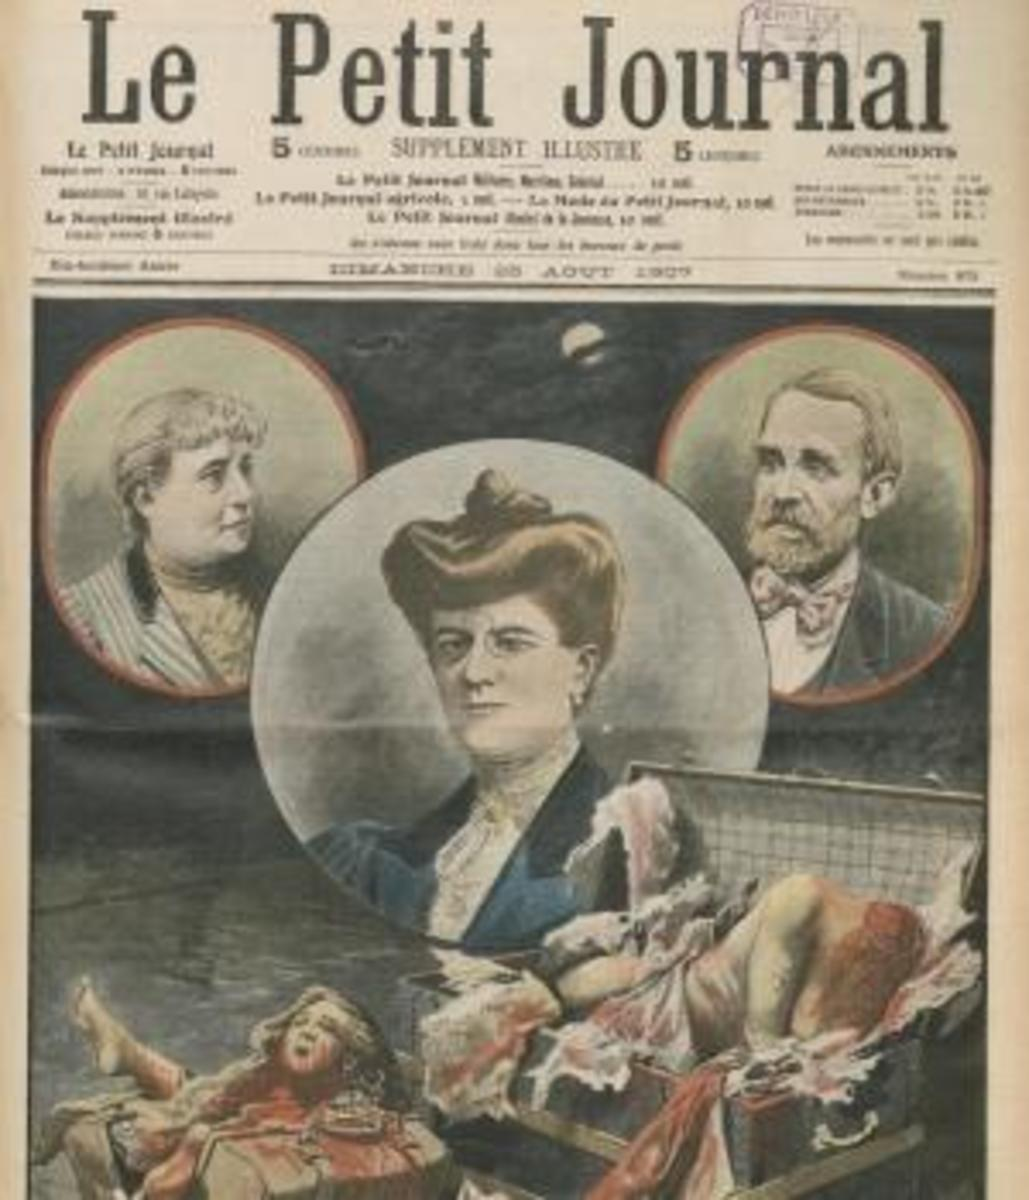 Cover of French Journal Le Petit Journal, No. 875 from August 25, 1907, about the murder case around Vere St. Leger Goold, Irish tennis player. Goold was later convicted of murder and sent to Devil's Island, French Guyana. (Credit: Bibliothèque Nationale de France)